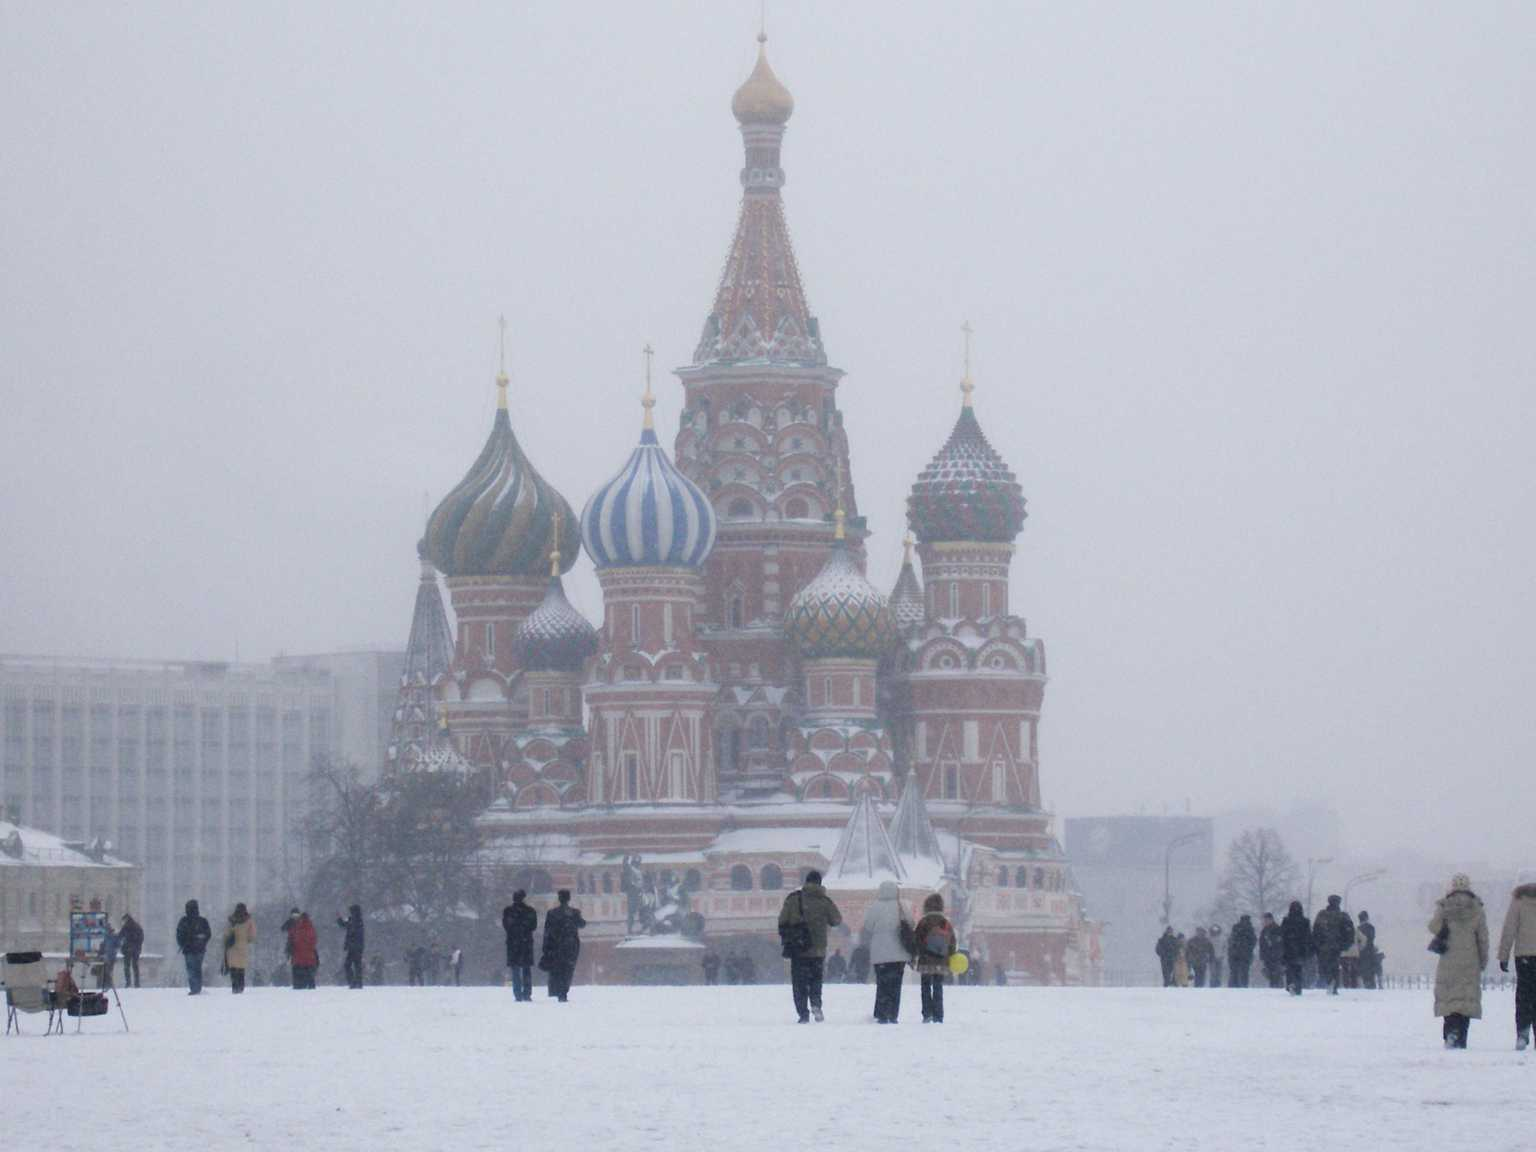 Visiting Moscow in the winter